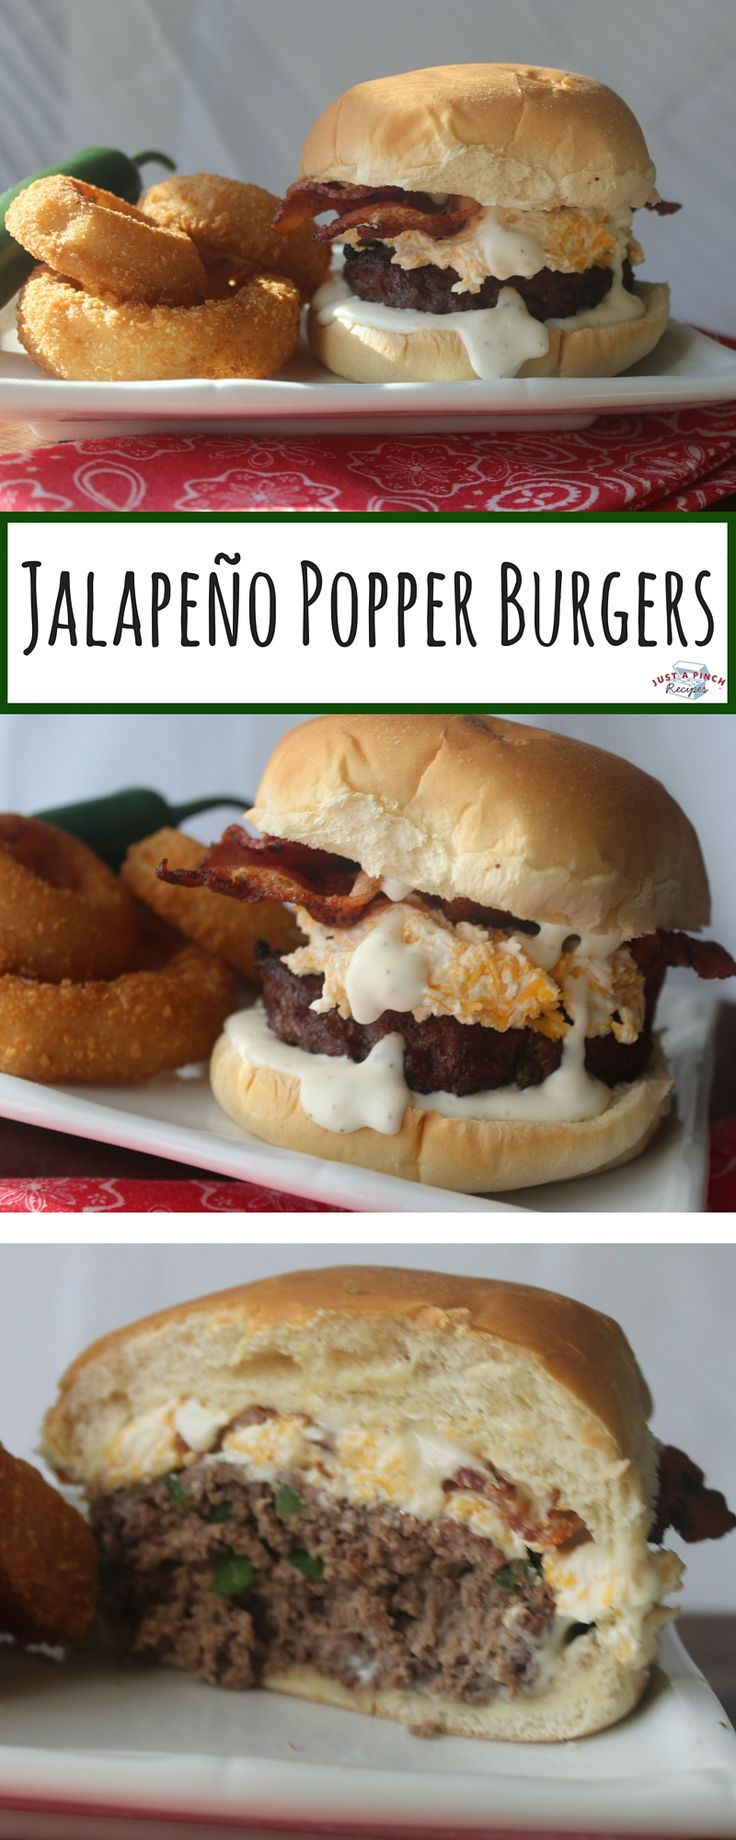 Jalapeno popper meets burger? YES PLEASE! This burger recipes is seriously amazing!